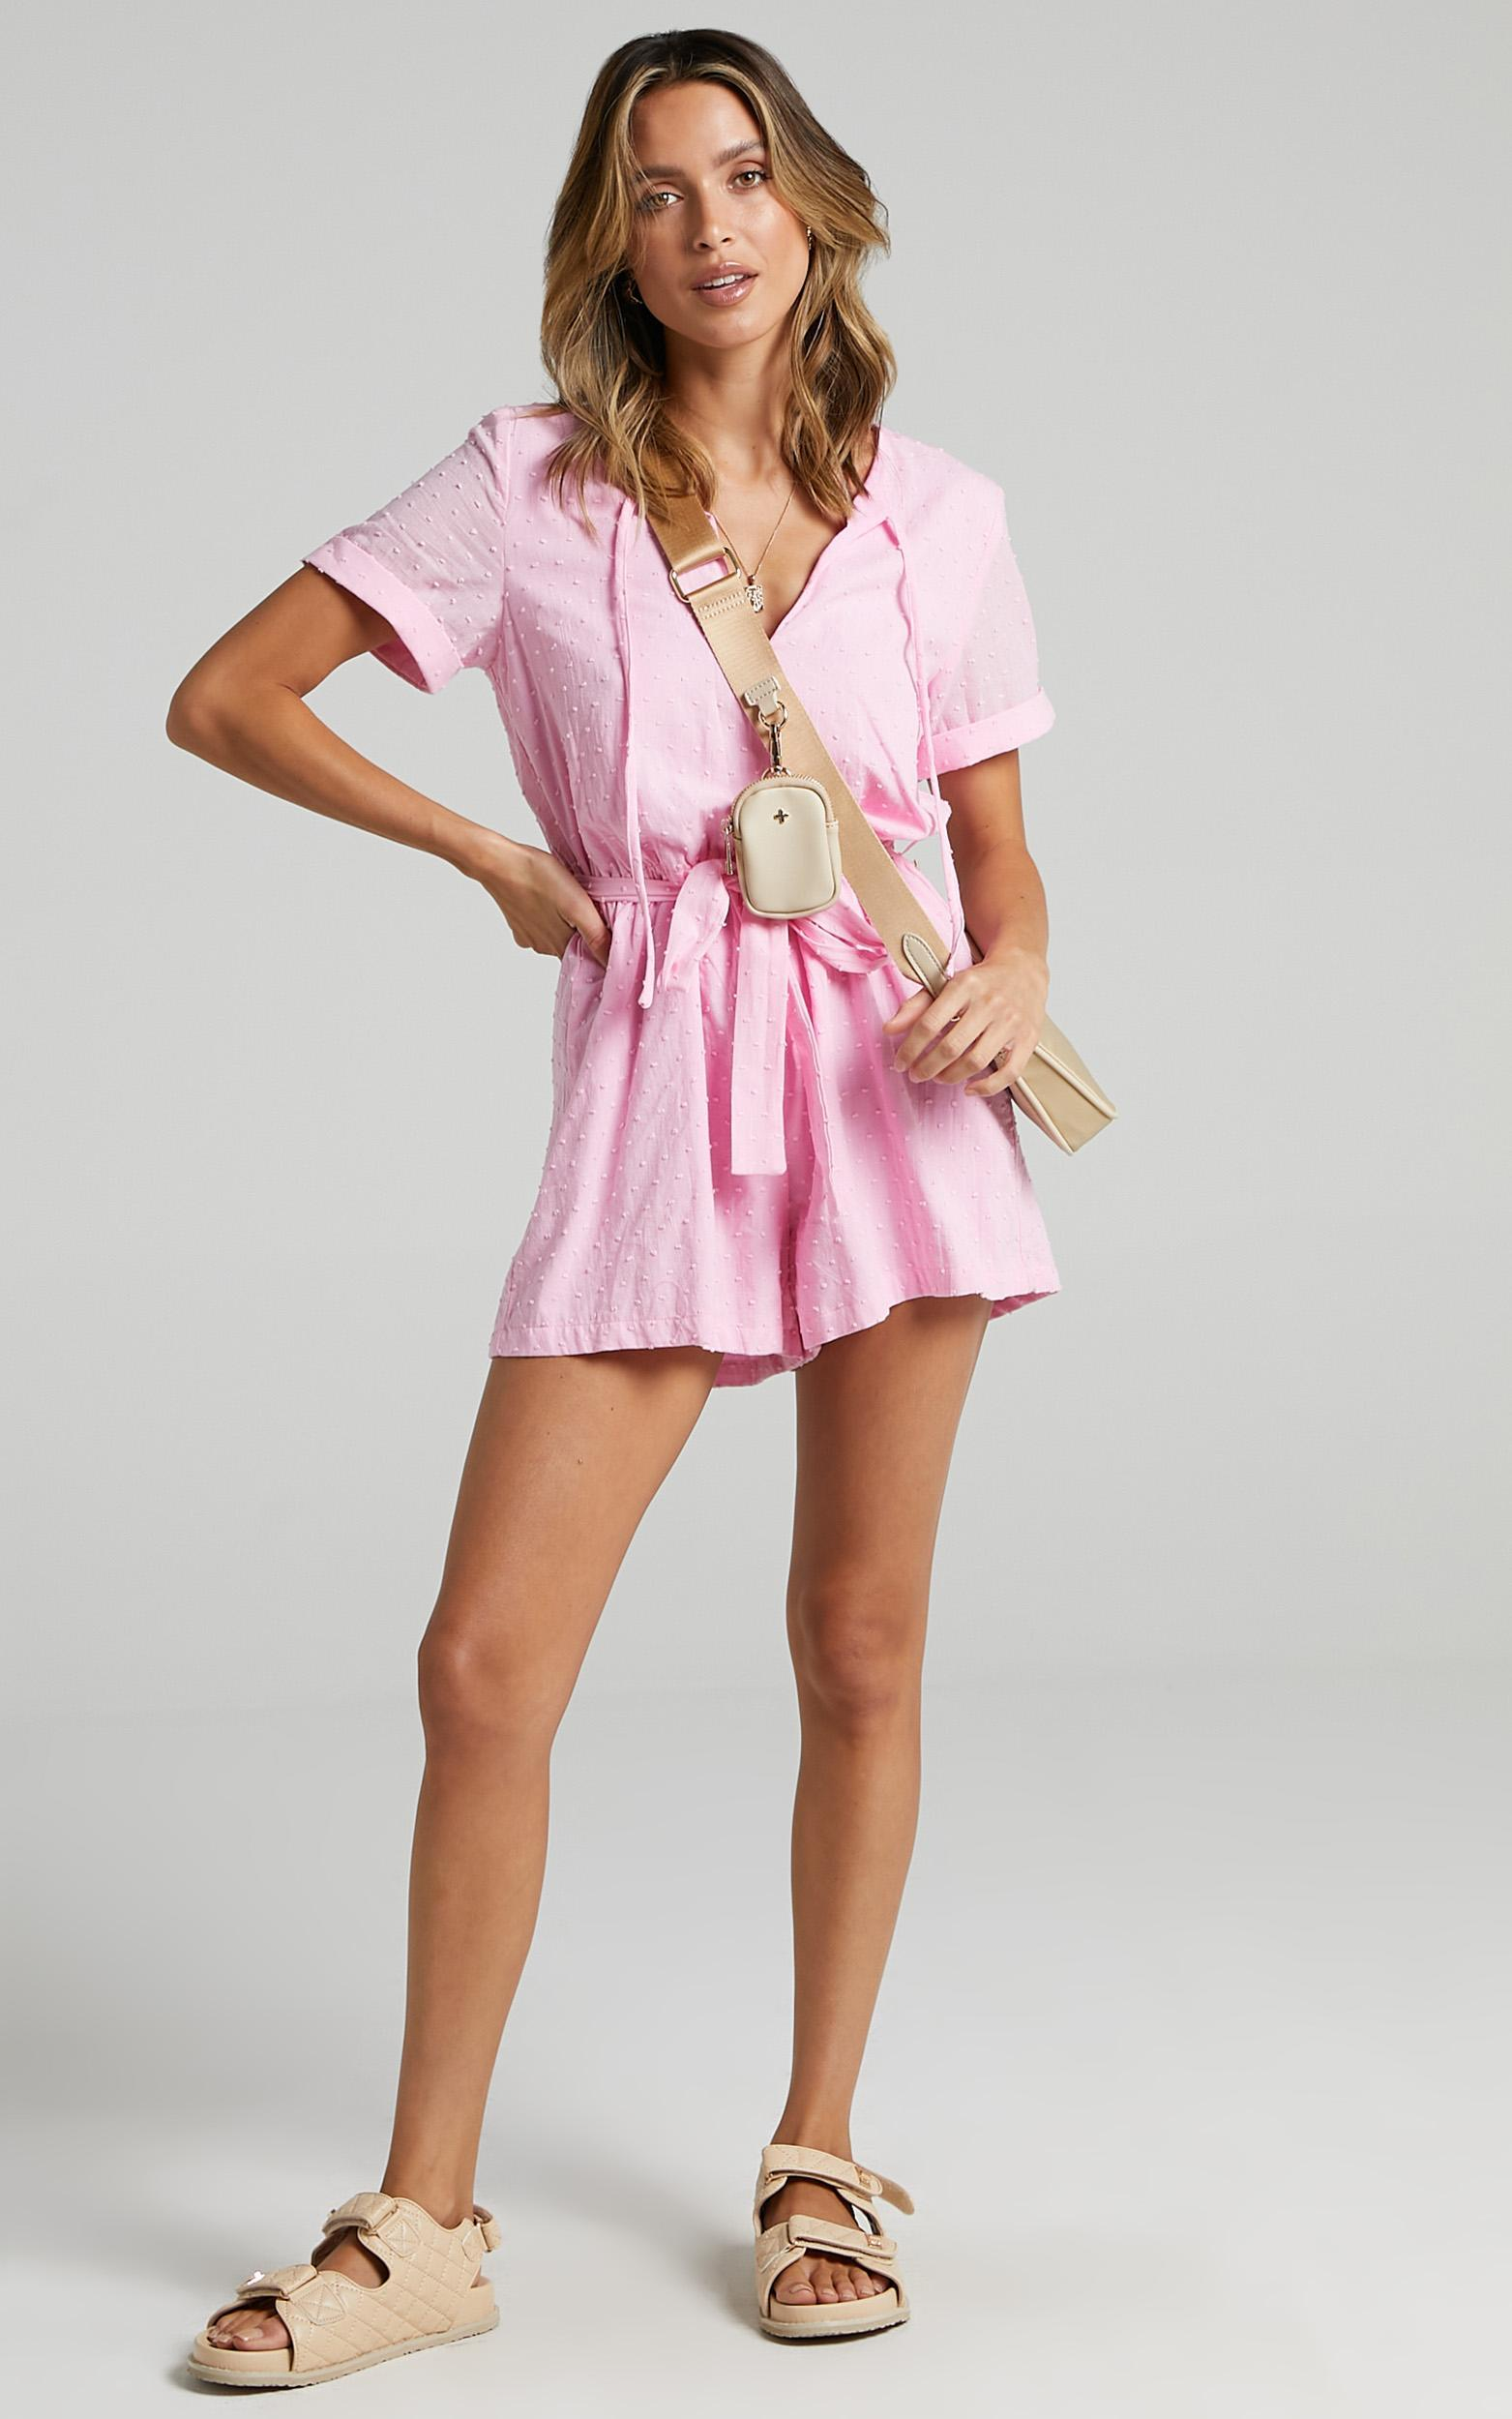 Northern Sun Playsuit in Pink - 04, PNK2, hi-res image number null